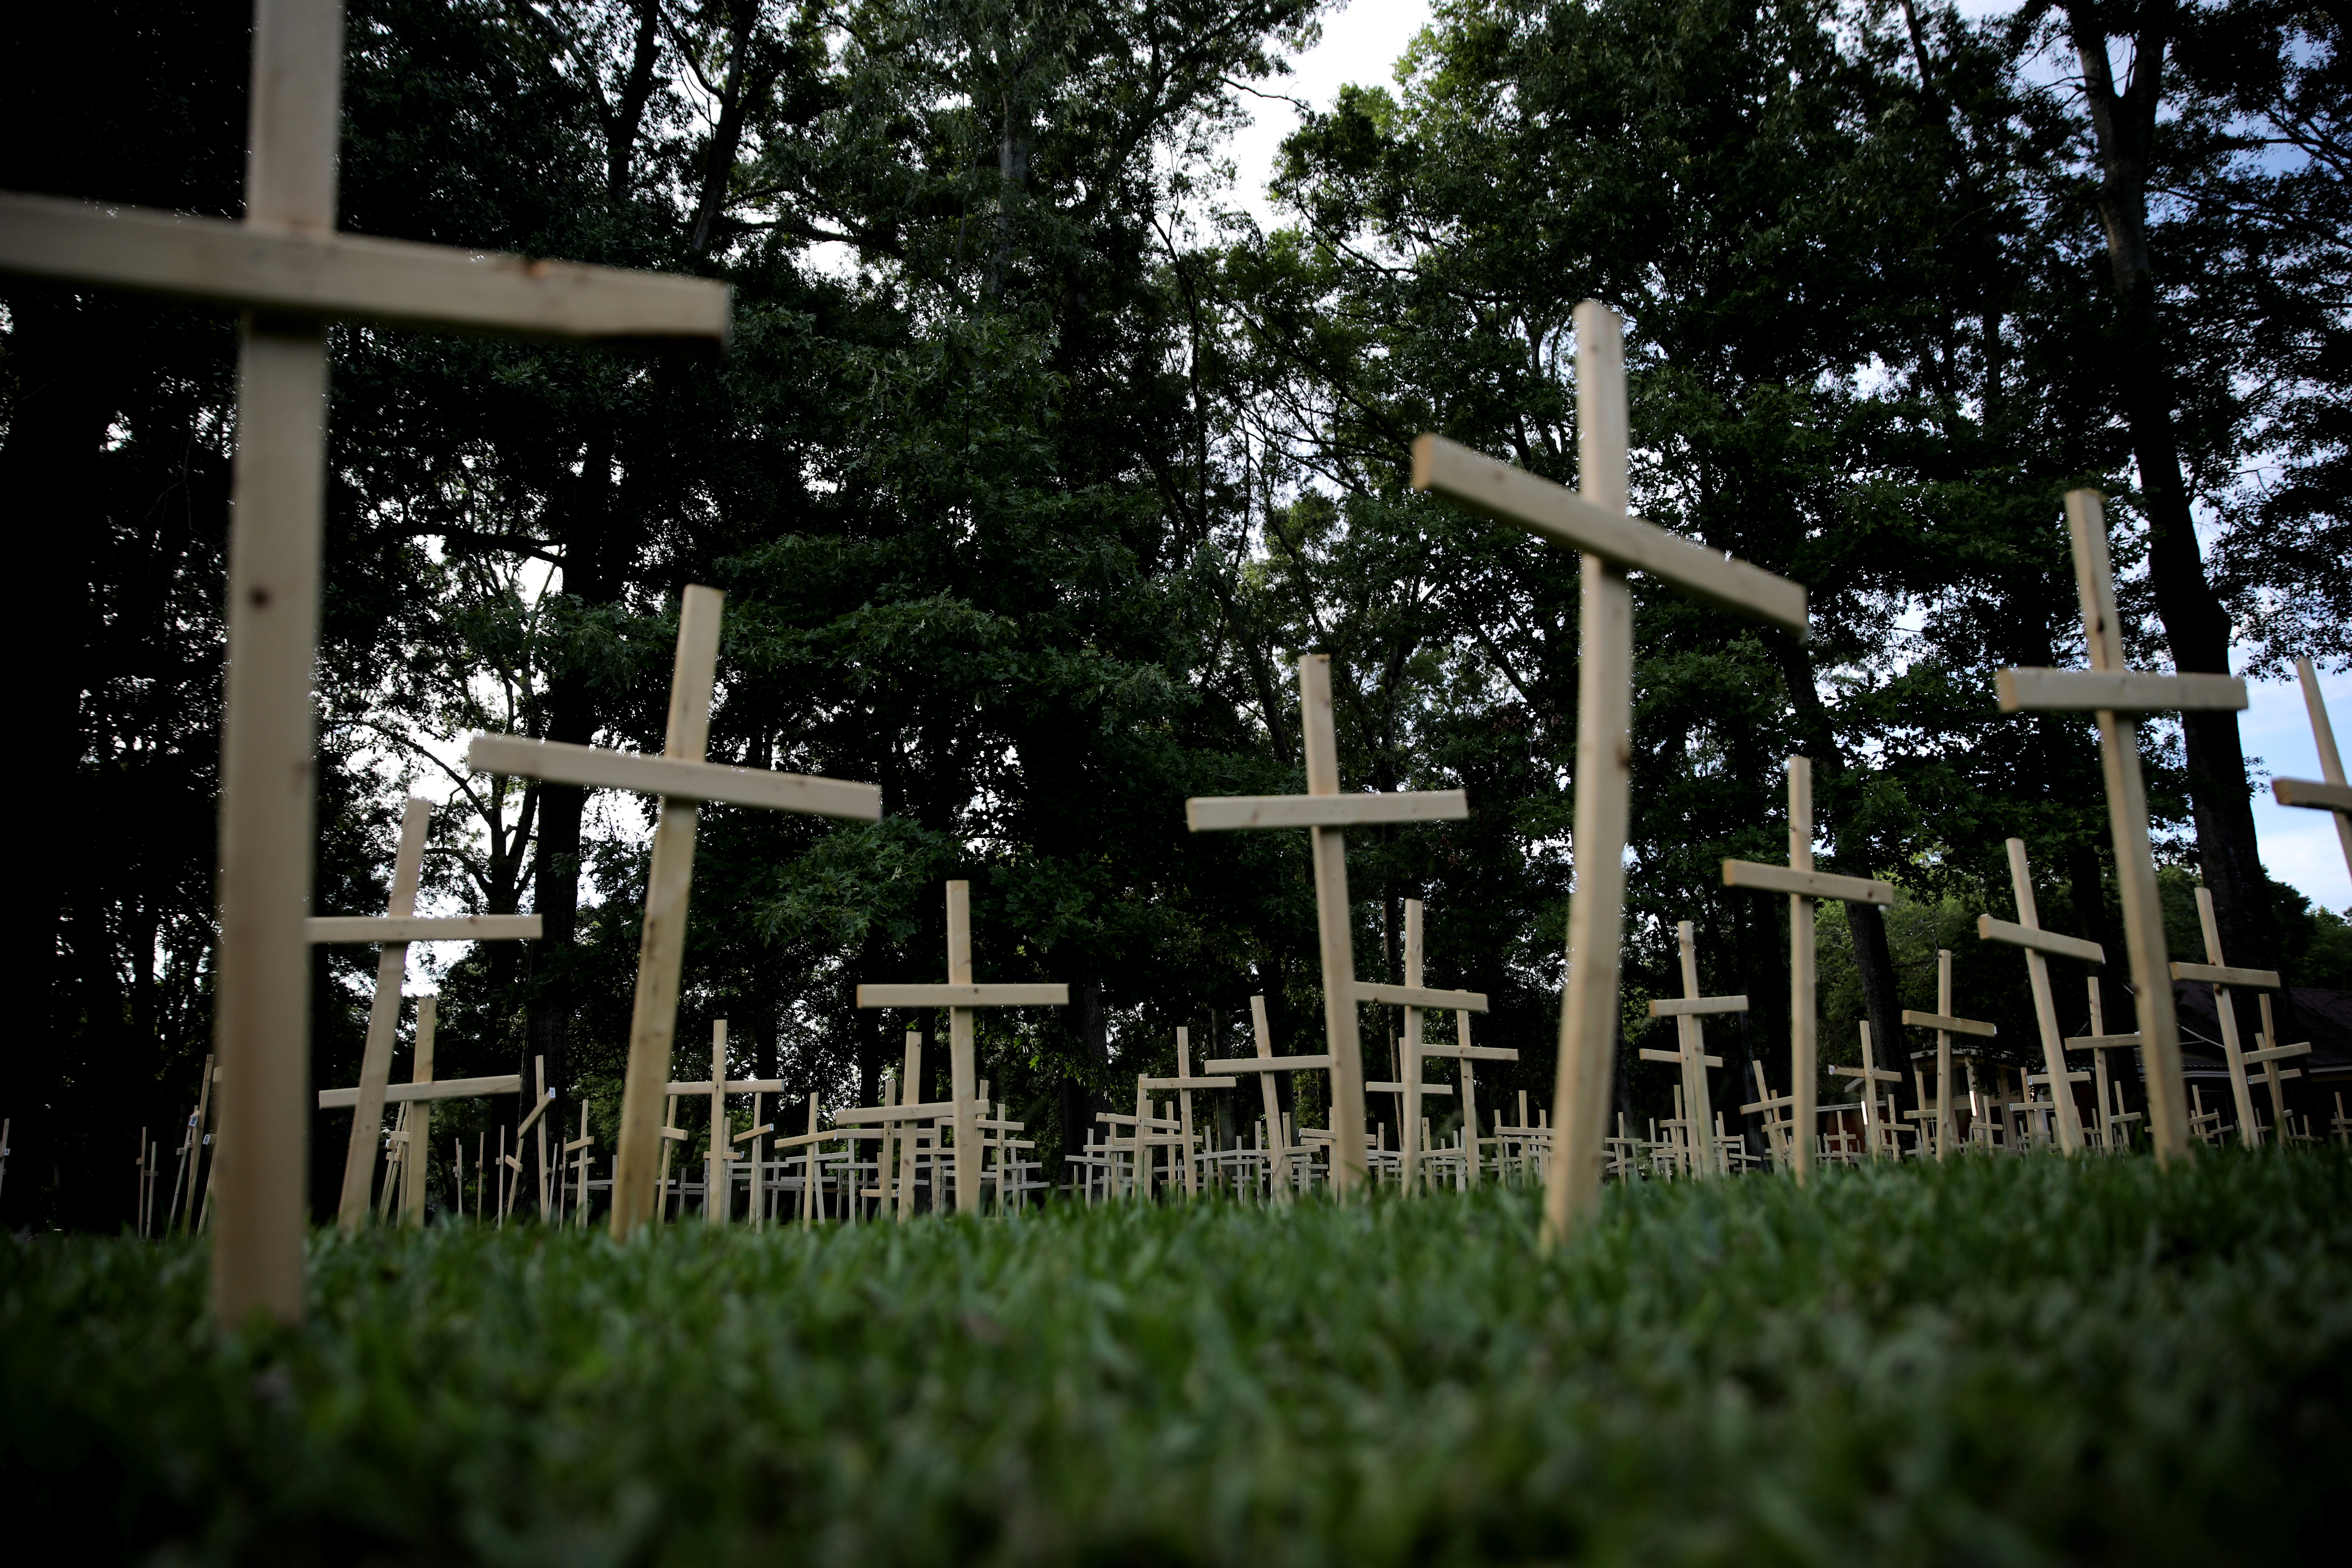 Crosses are seen outside of a church, as each cross represents one life lost to coronavirus disease (COVID-19) in the state of Louisiana, in Baton Rouge, Louisiana U.S., April 10, 2020. REUTERS/Carlos Barria